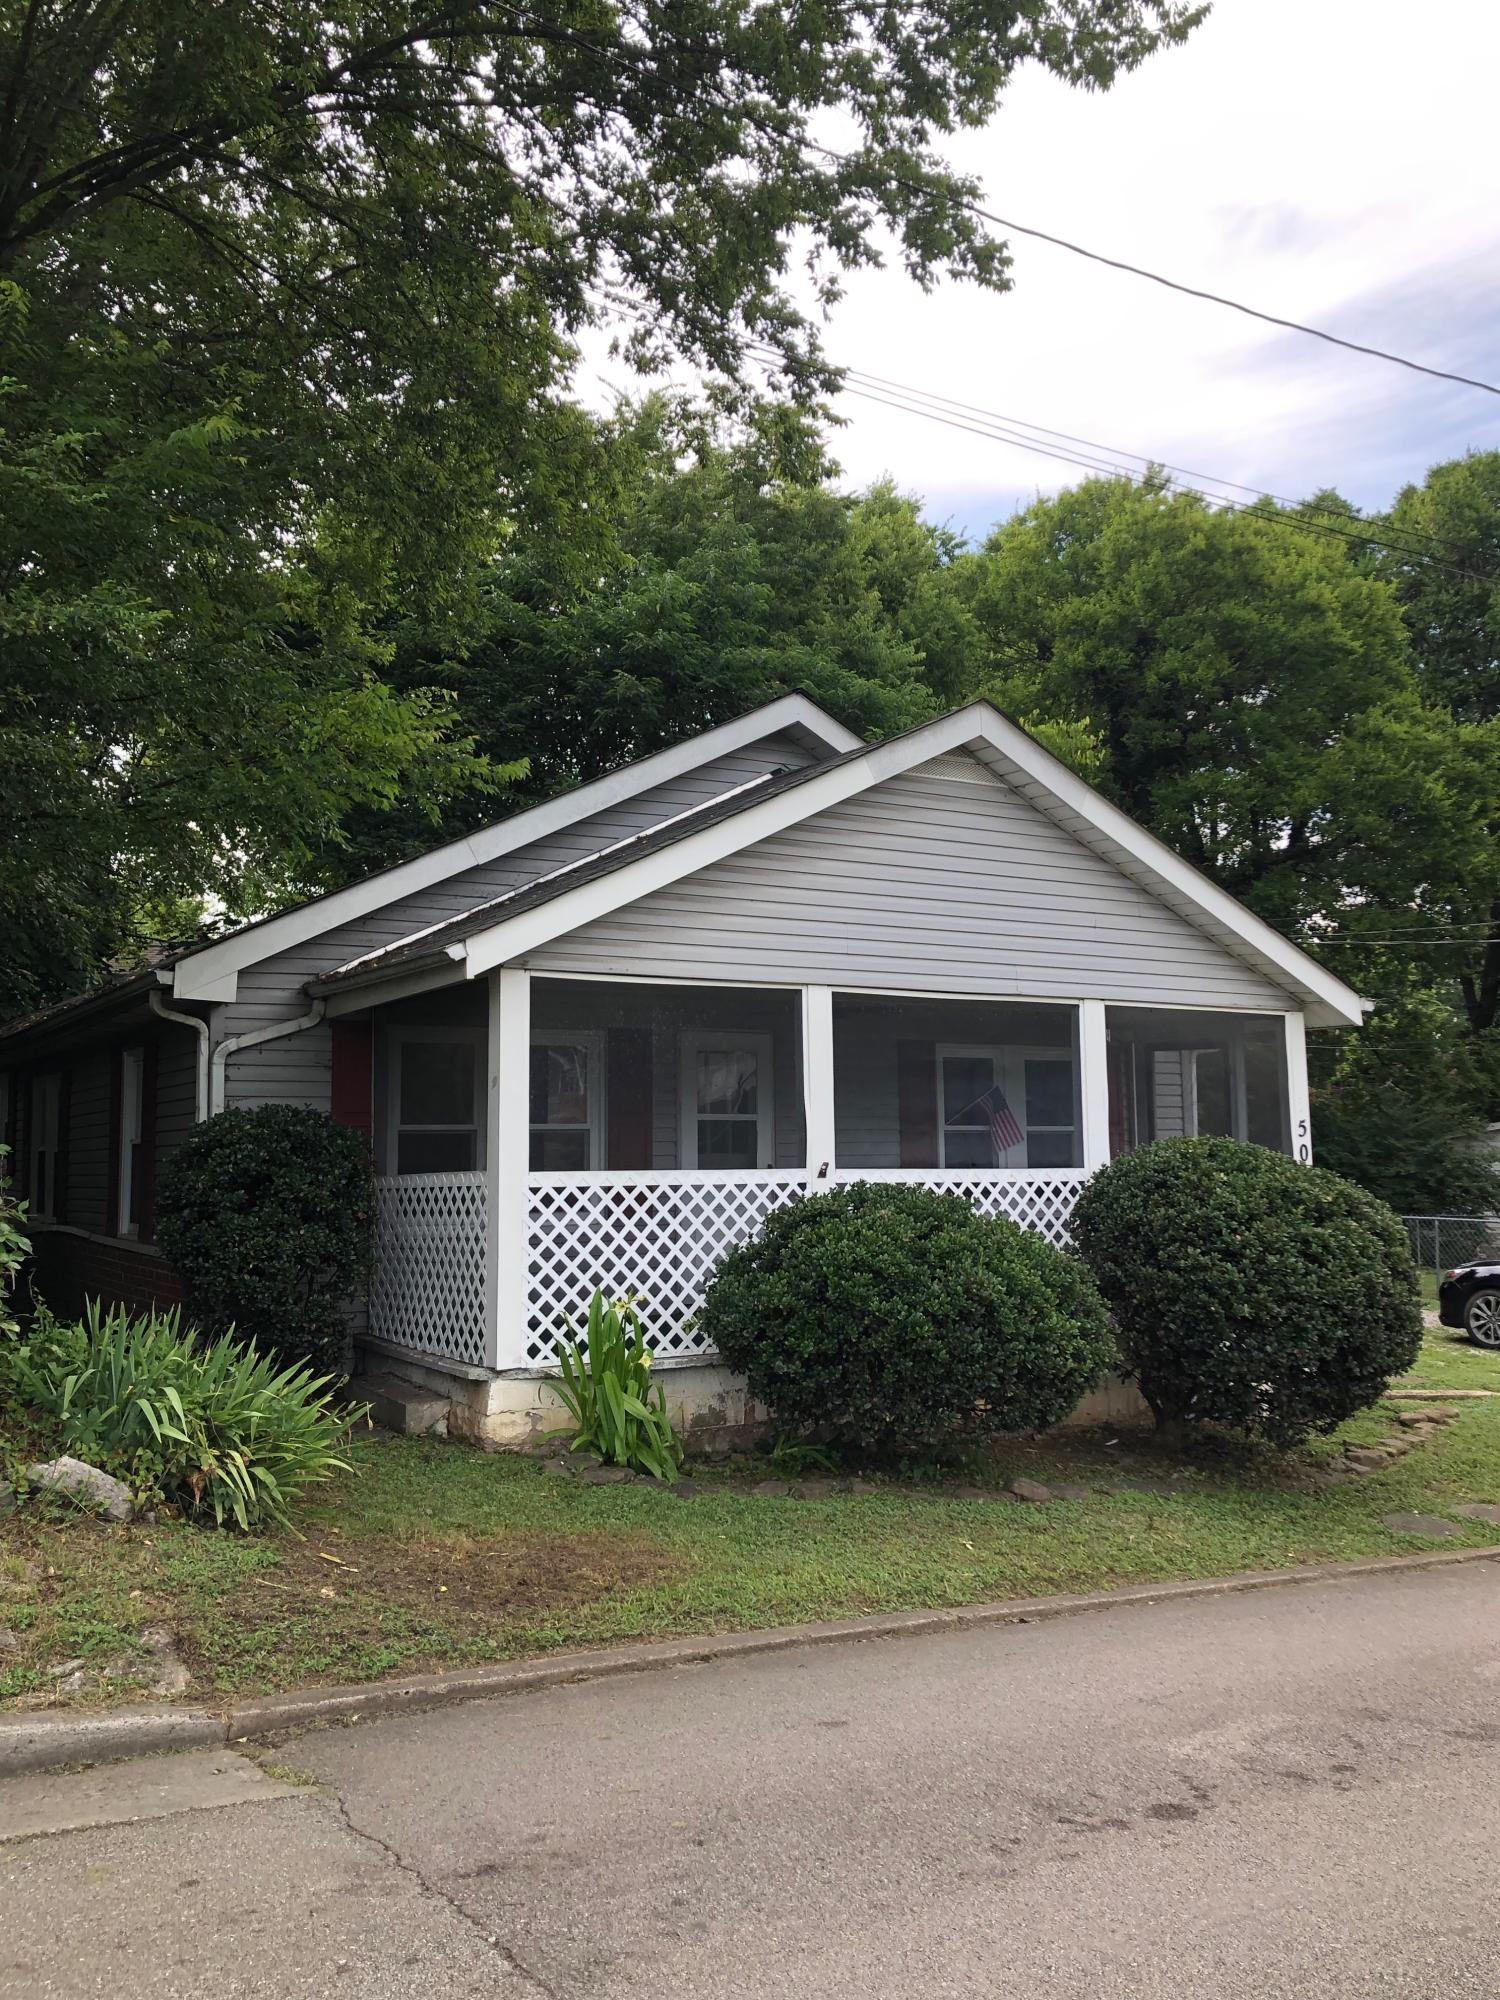 20190703233623213920000000-o Clinton anderson county homes for sale